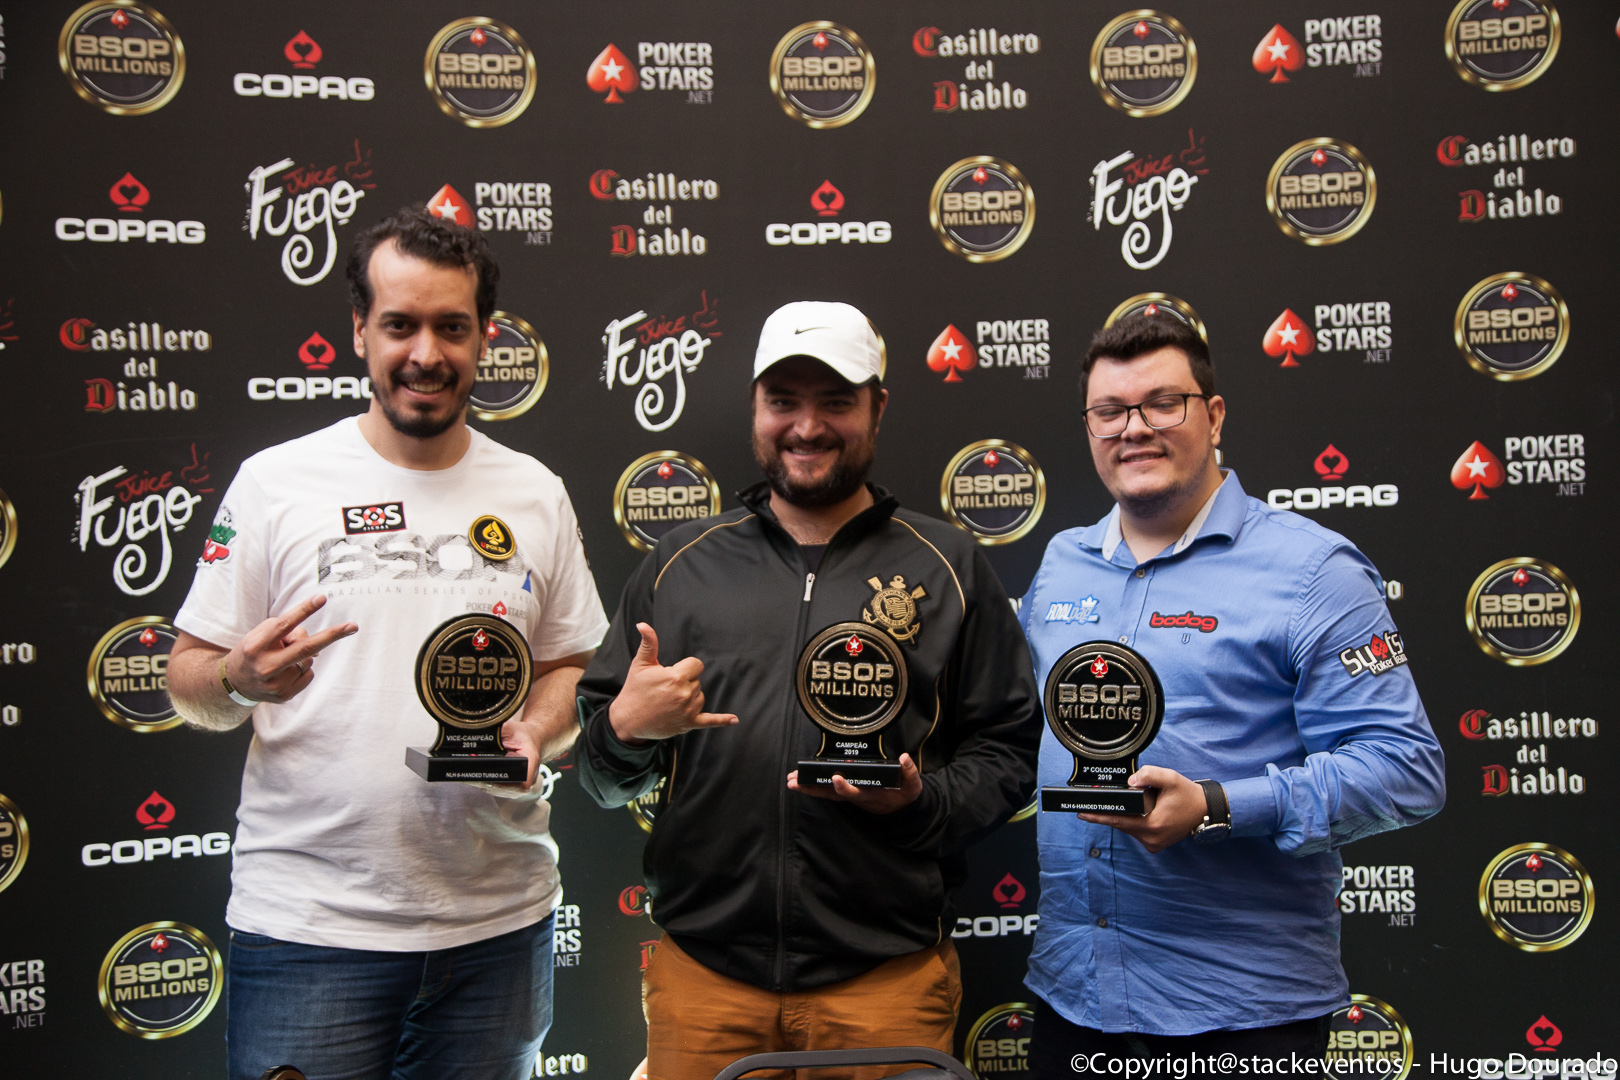 Pódio do 6-handed Knockout do BSOP Millions